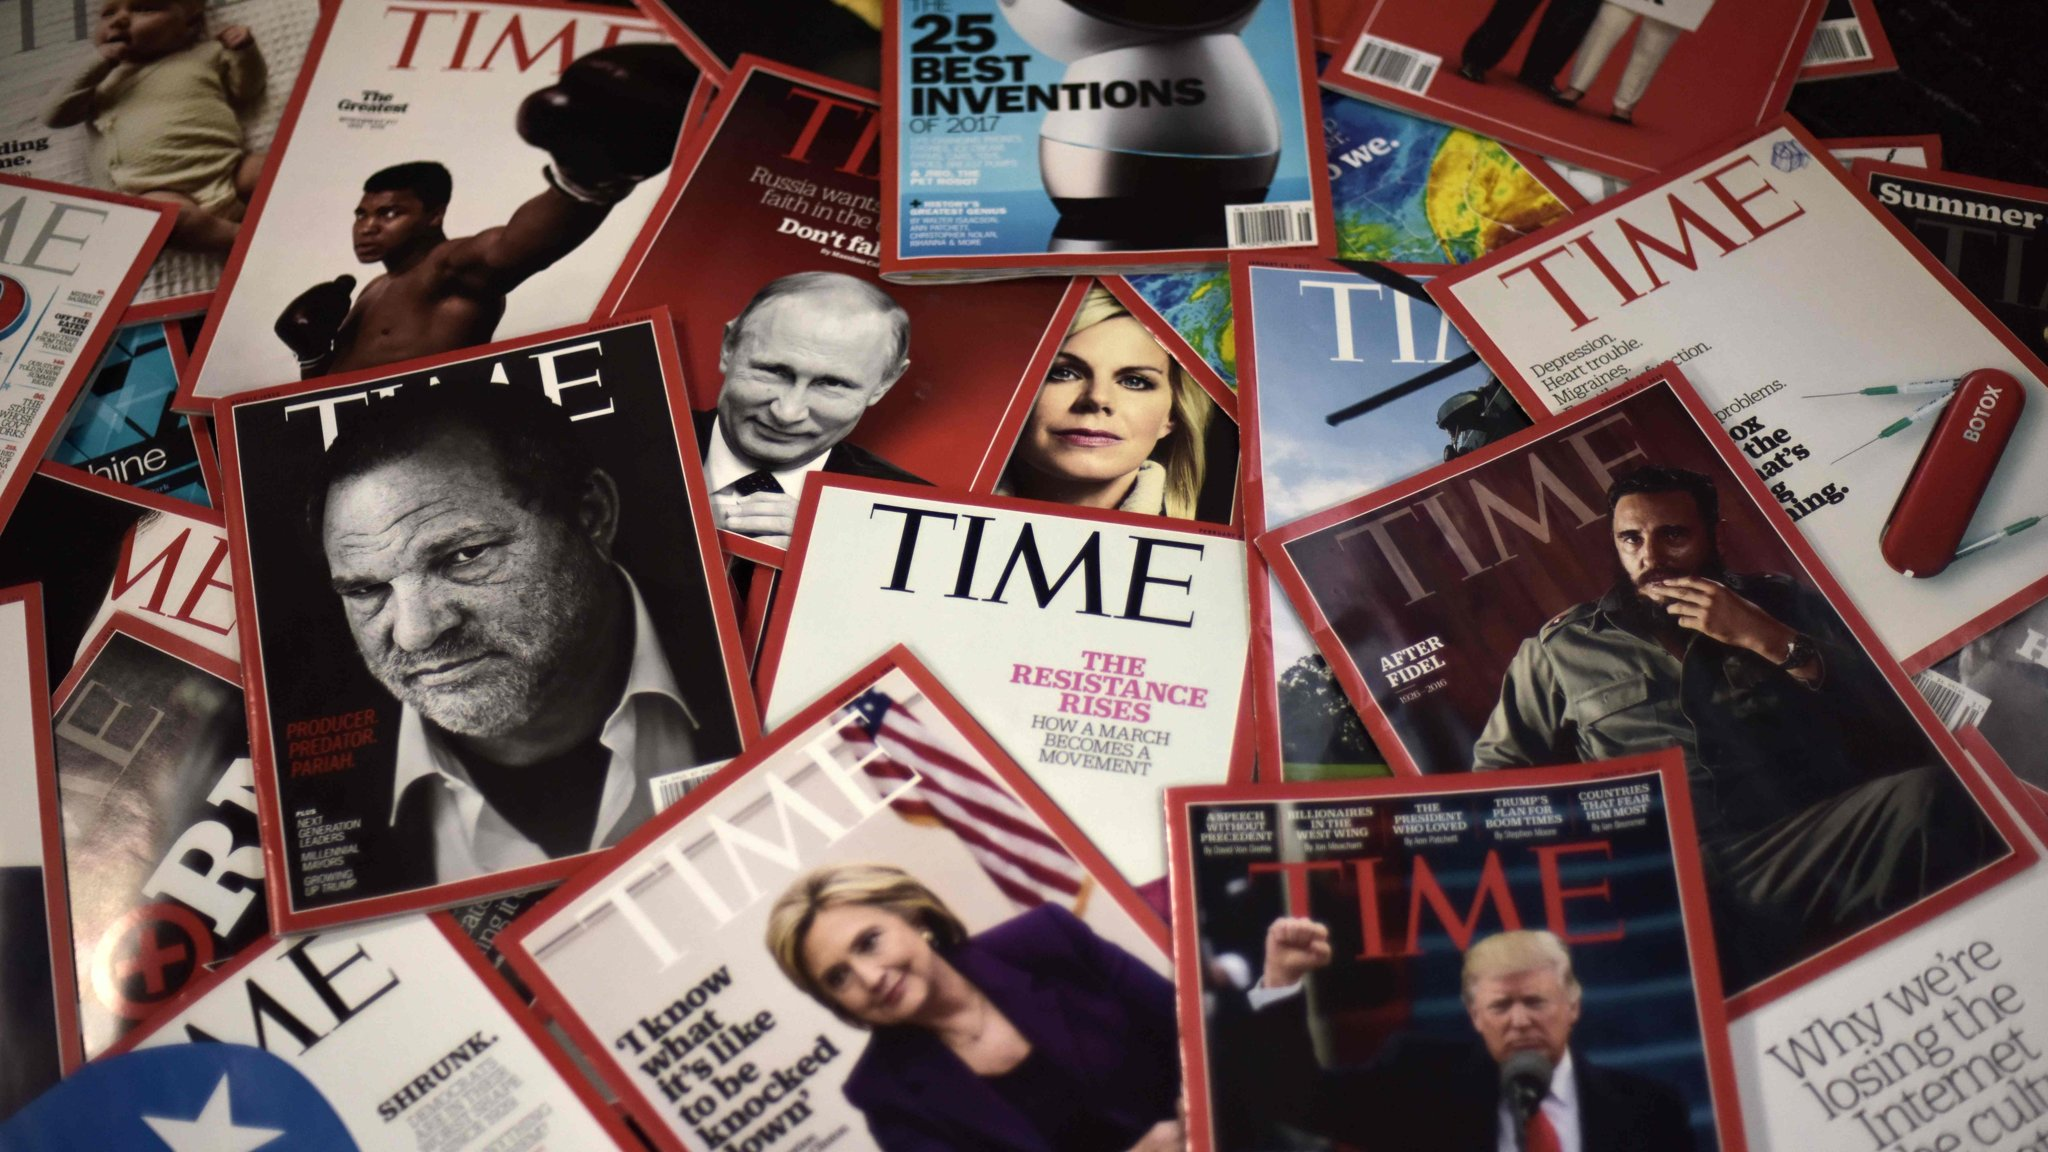 Meredith to cut hundreds of jobs at Time Inc